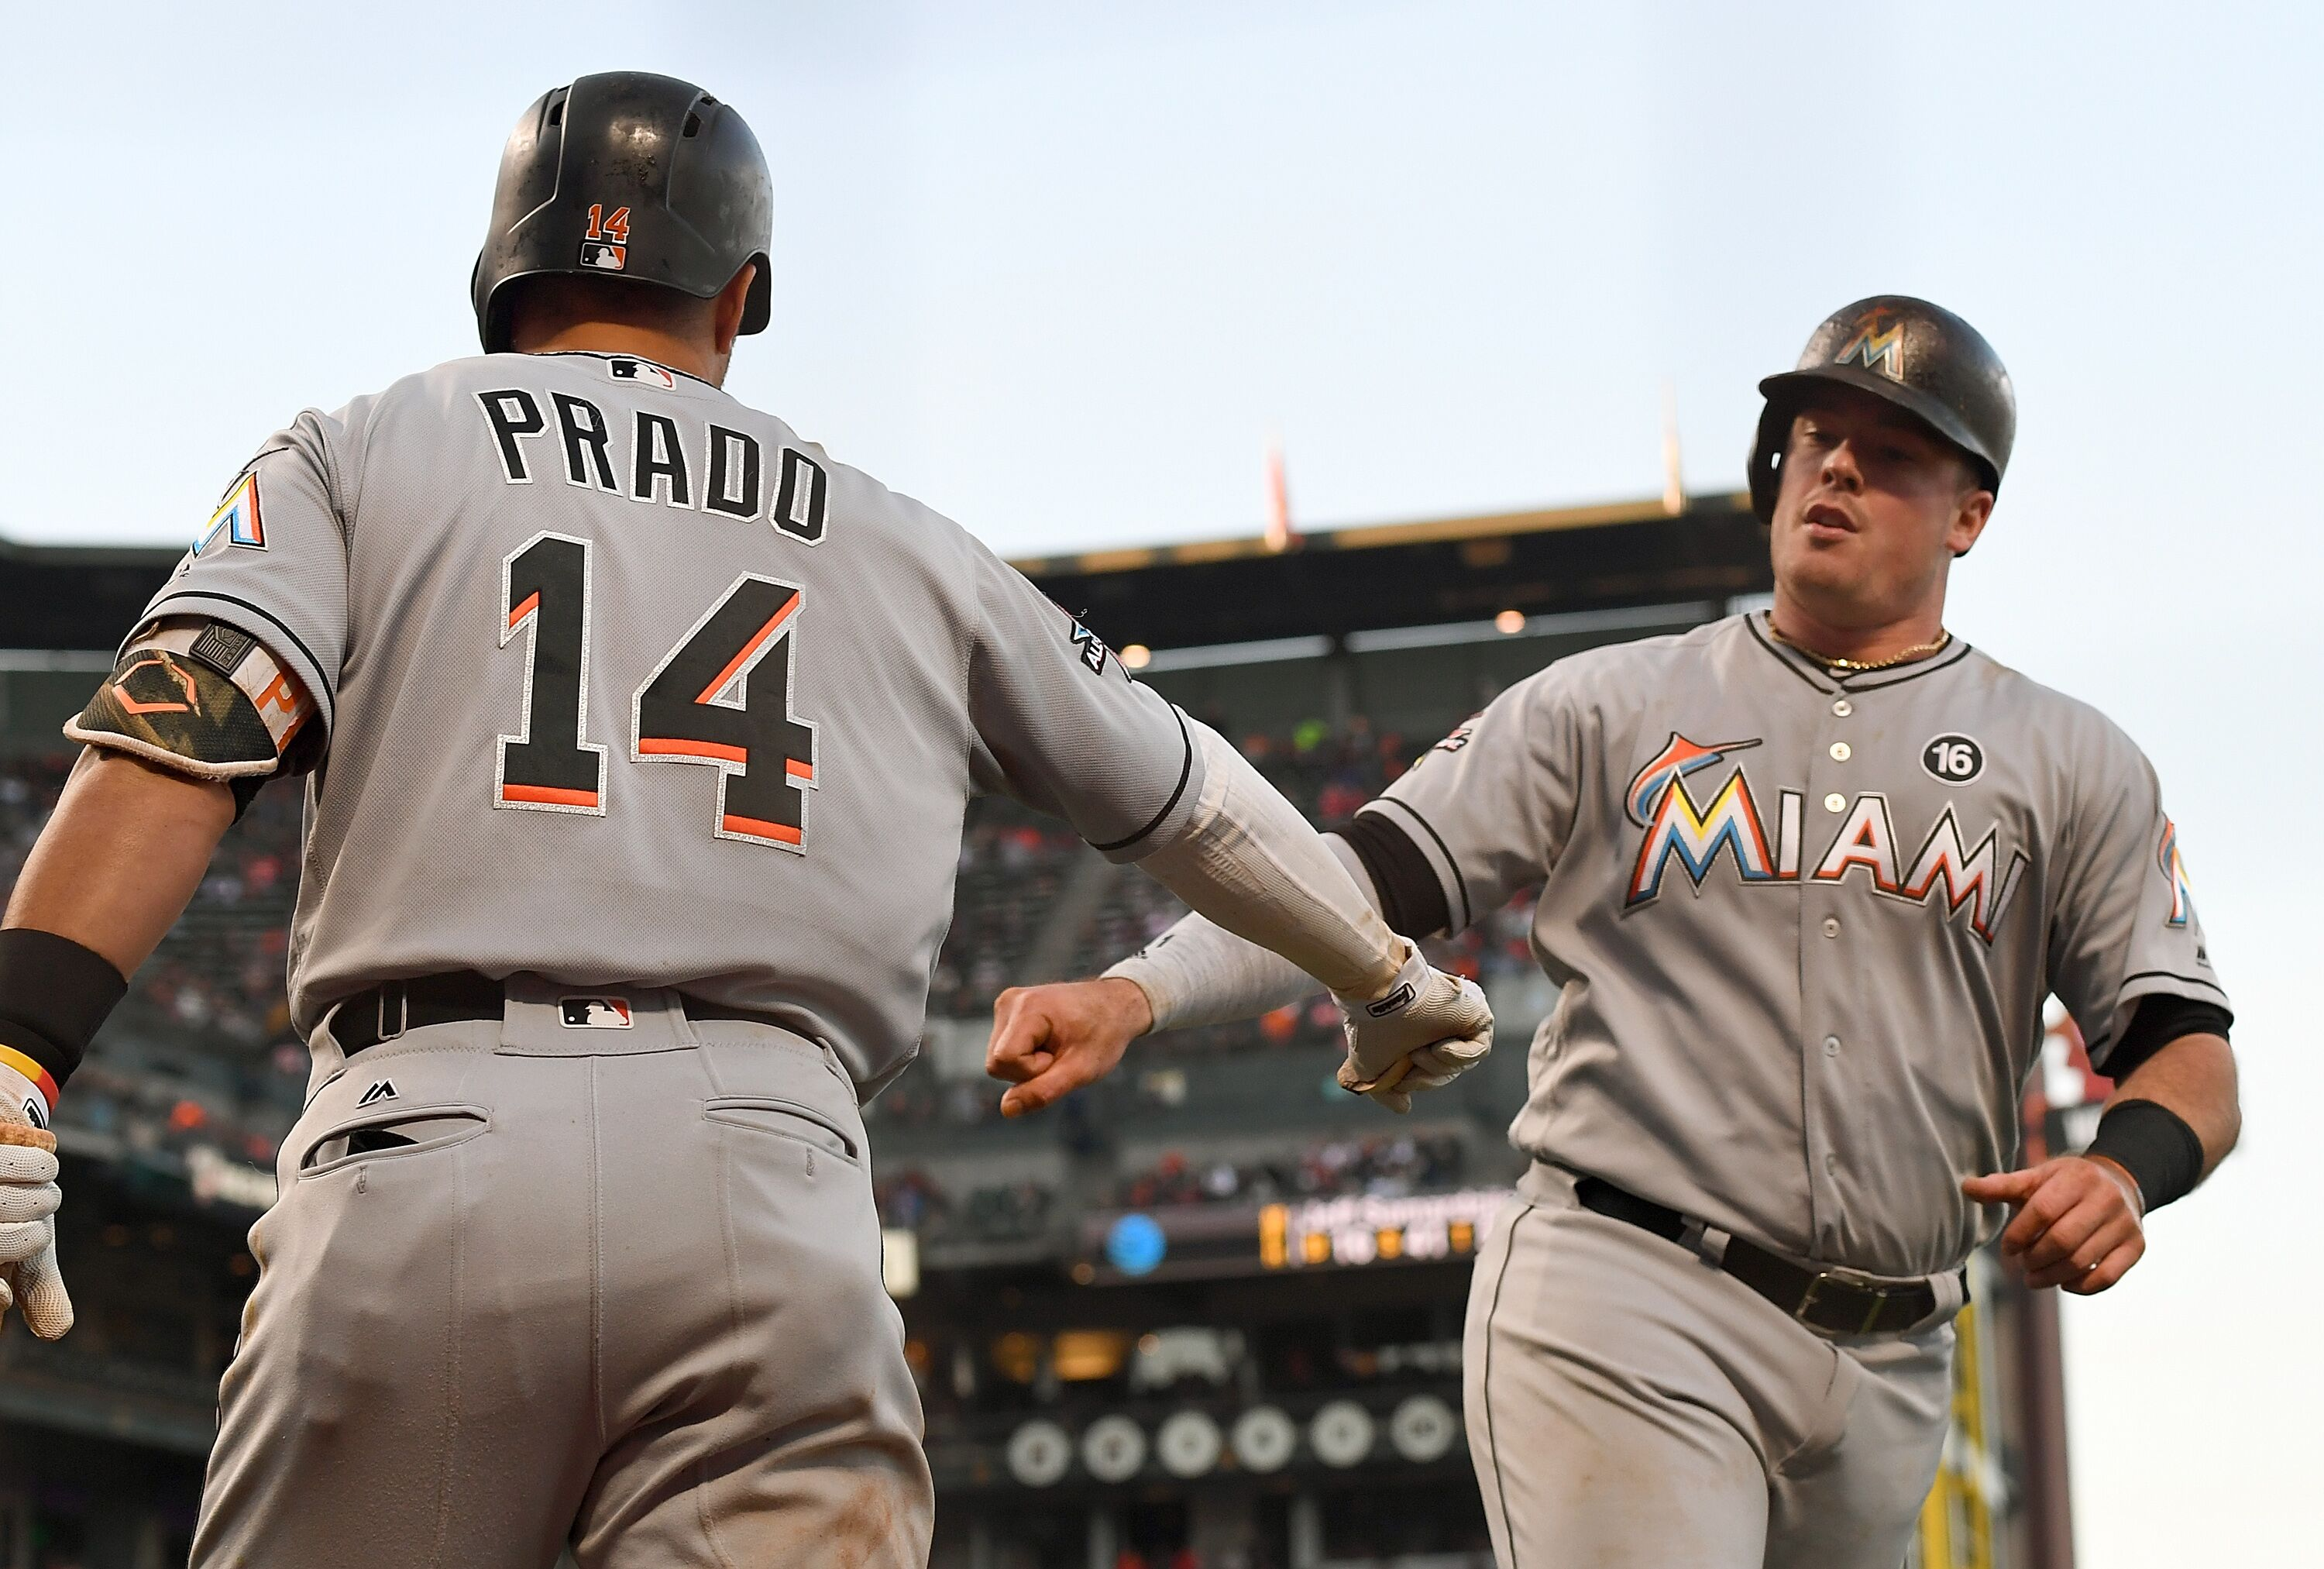 810969324-miami-marlins-v-san-francisco-giants.jpg